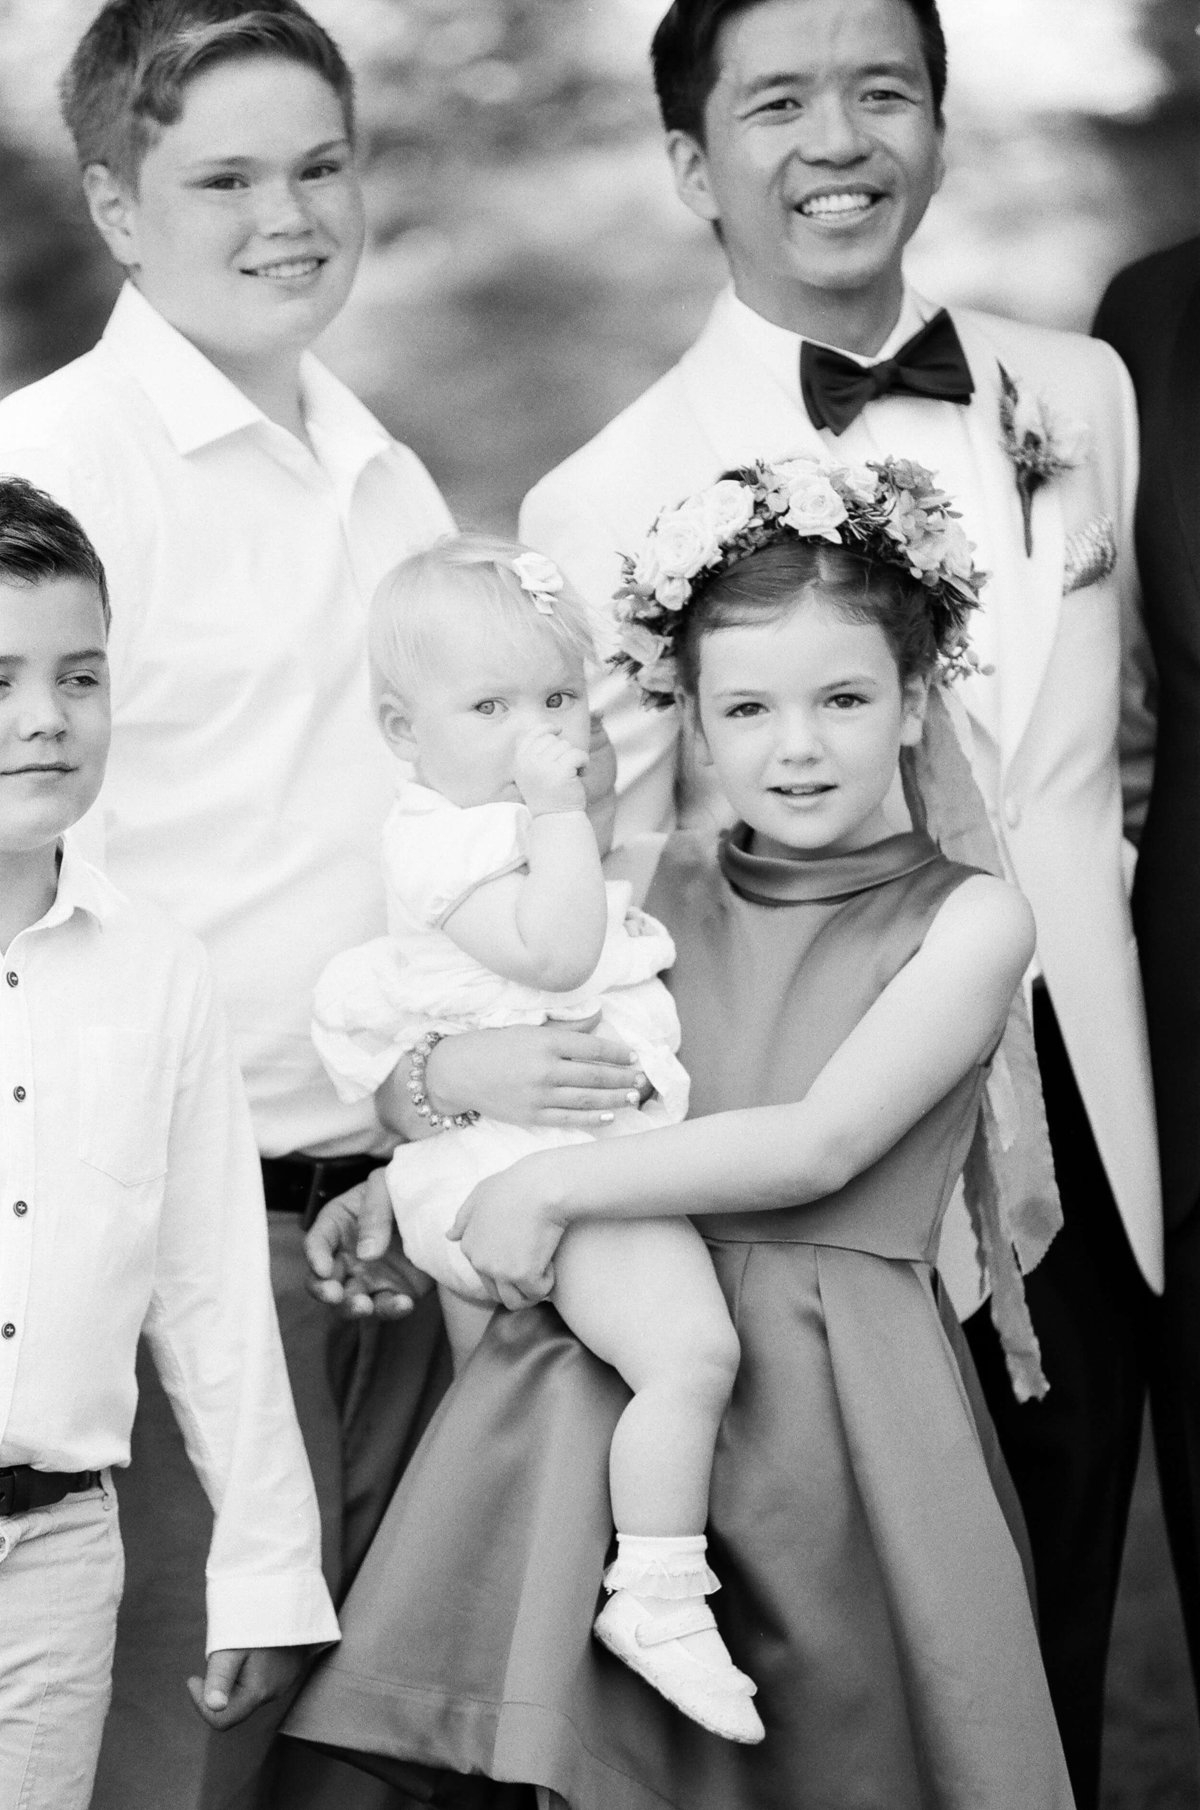 28-KTMerry-wedding-photography-family-portrait-blackandwhite